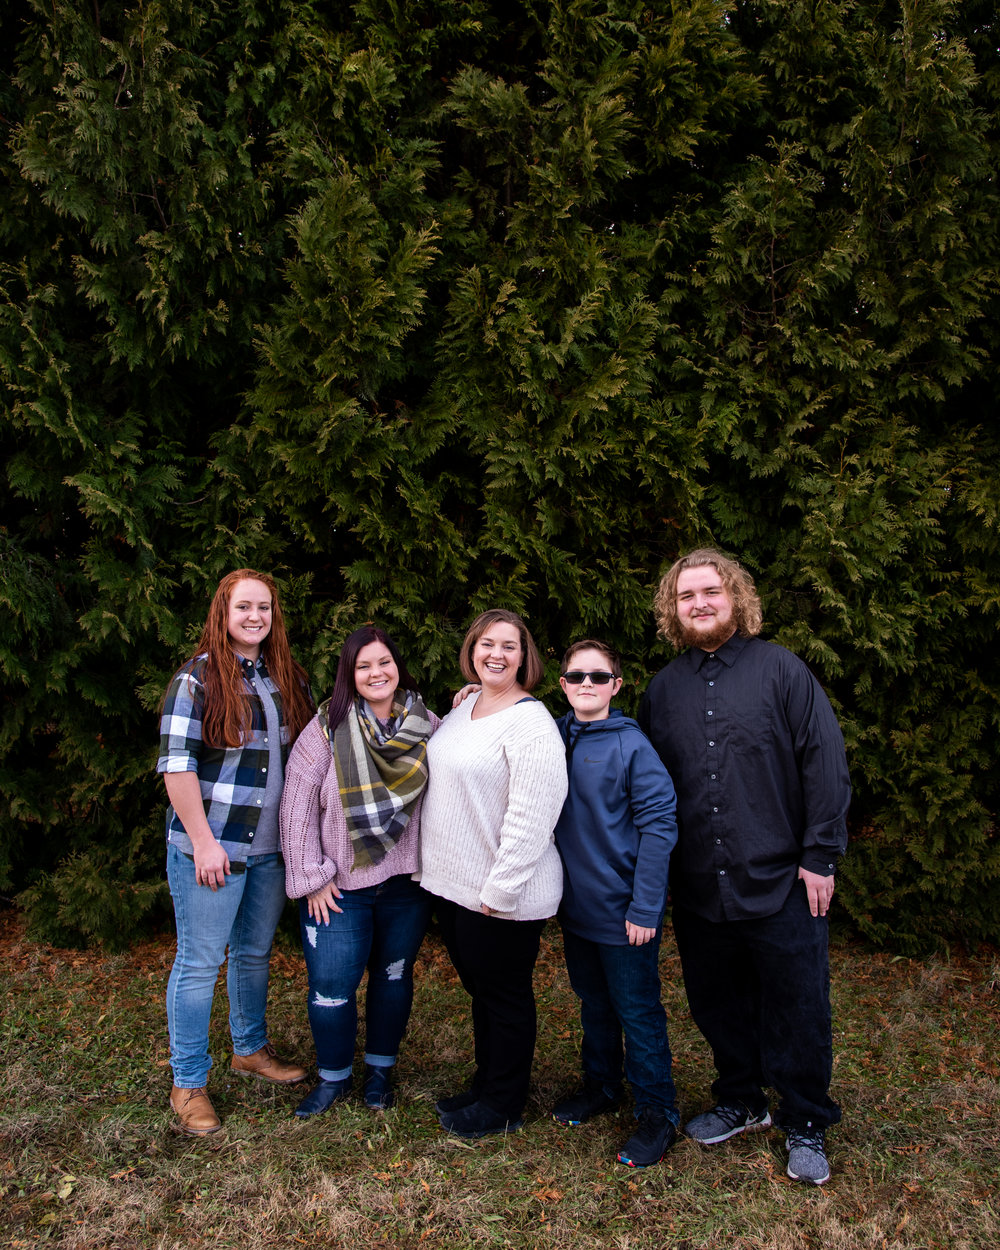 Kyla Jo Photography // Muncie Indiana Photographer // Family Photos // Whitetail Tree Farm